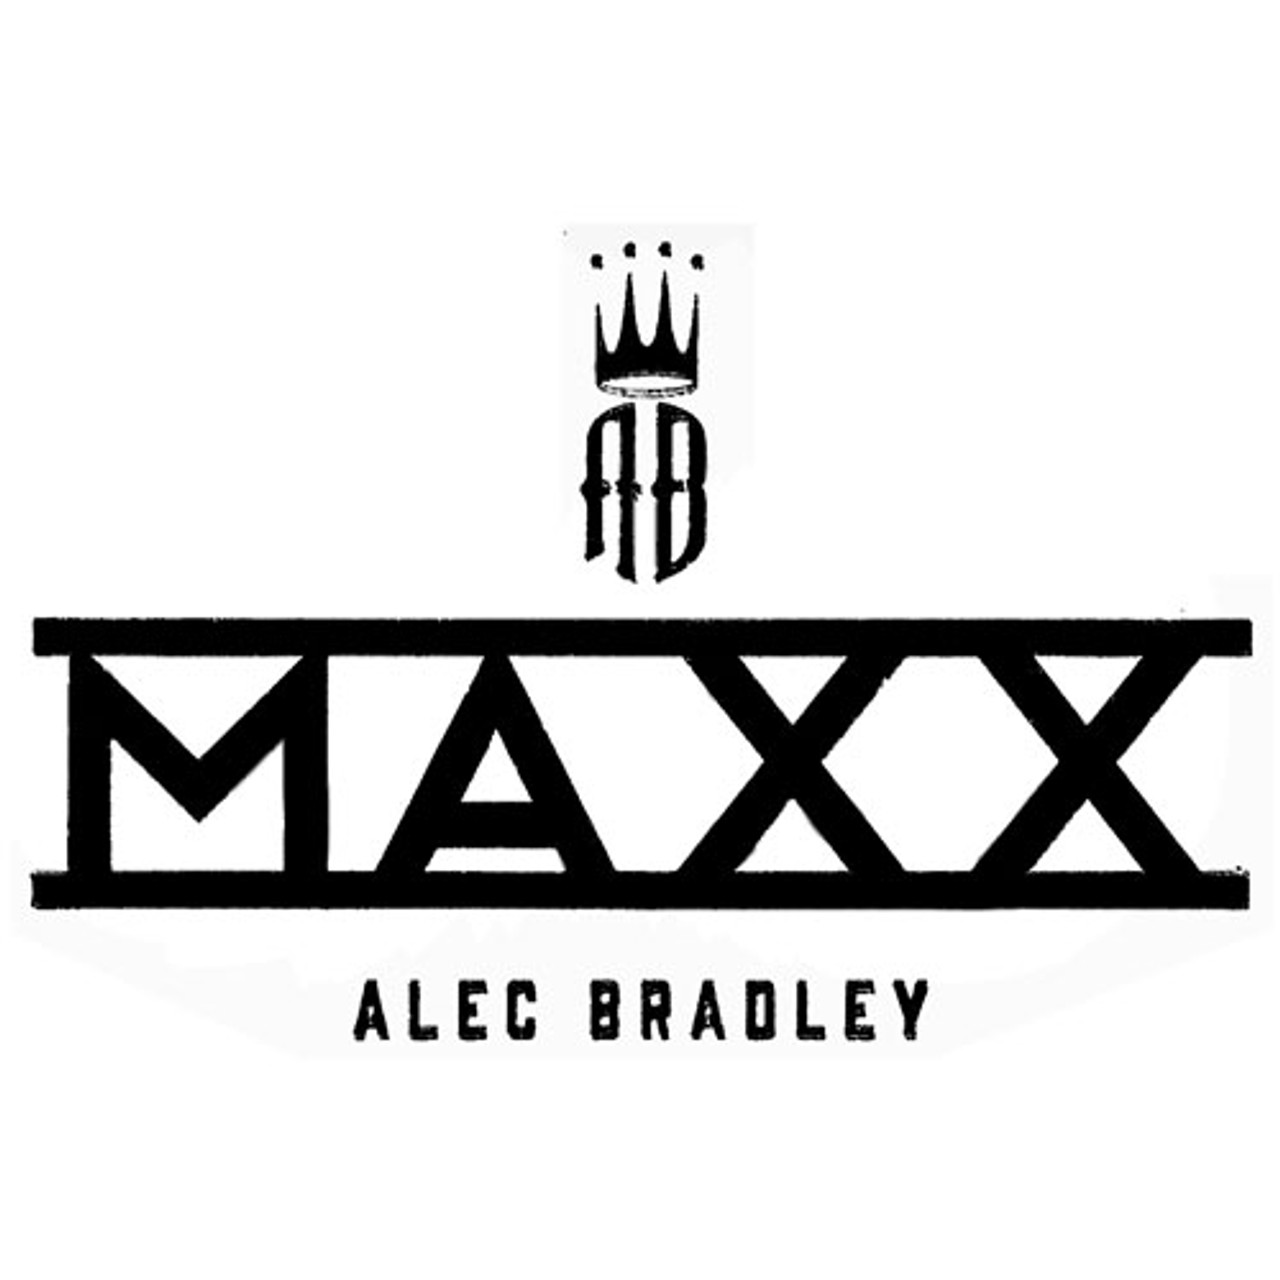 Alec Bradley MAXX Superfreak Cigars - 8 1/2 x 60 (Box of 20)